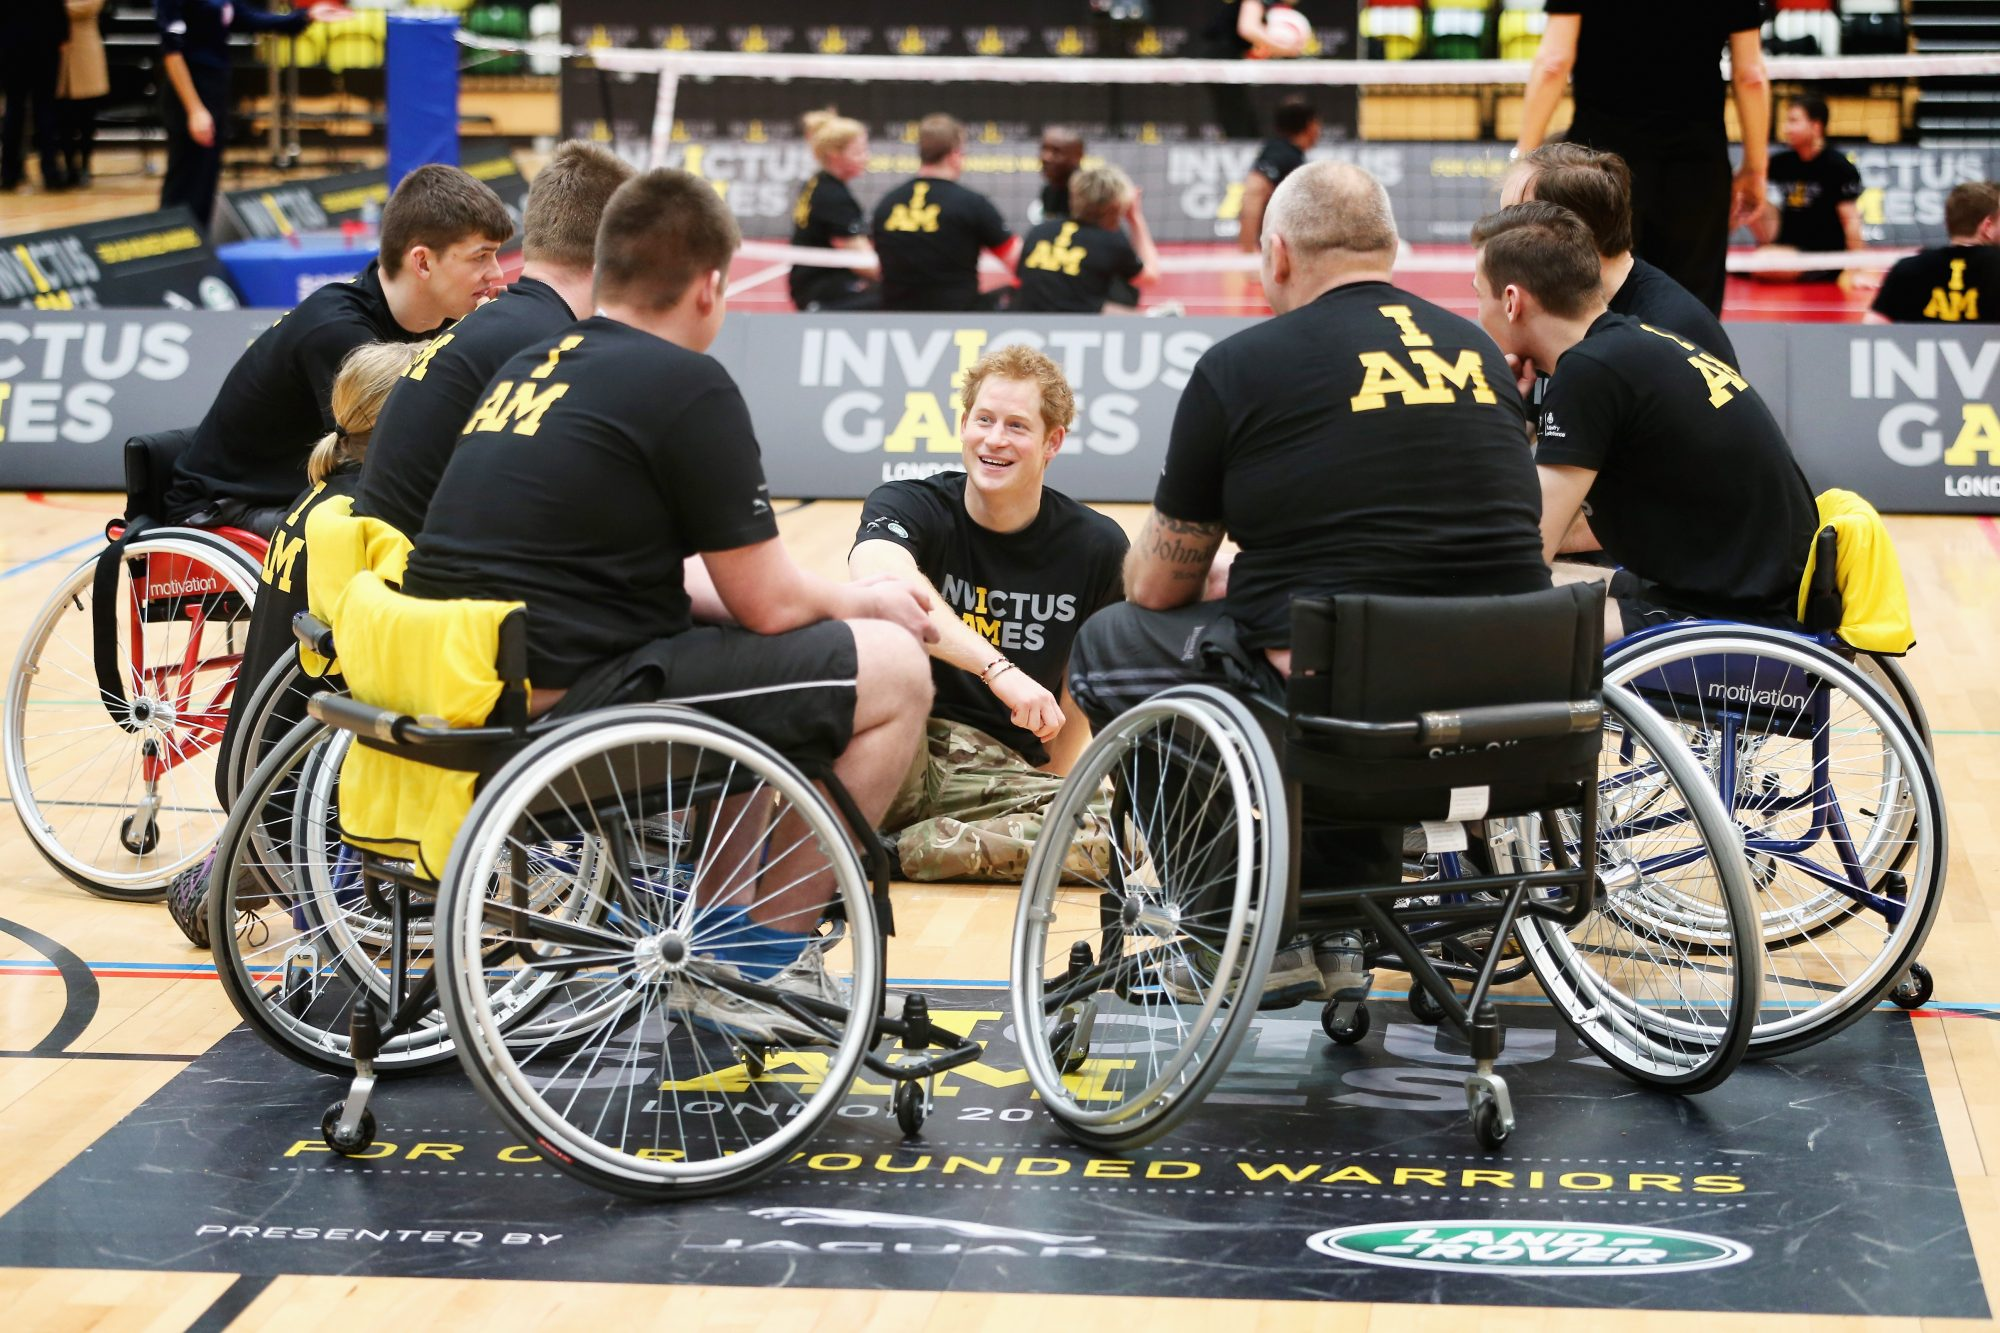 Prince Harry Launches The Invictus Games